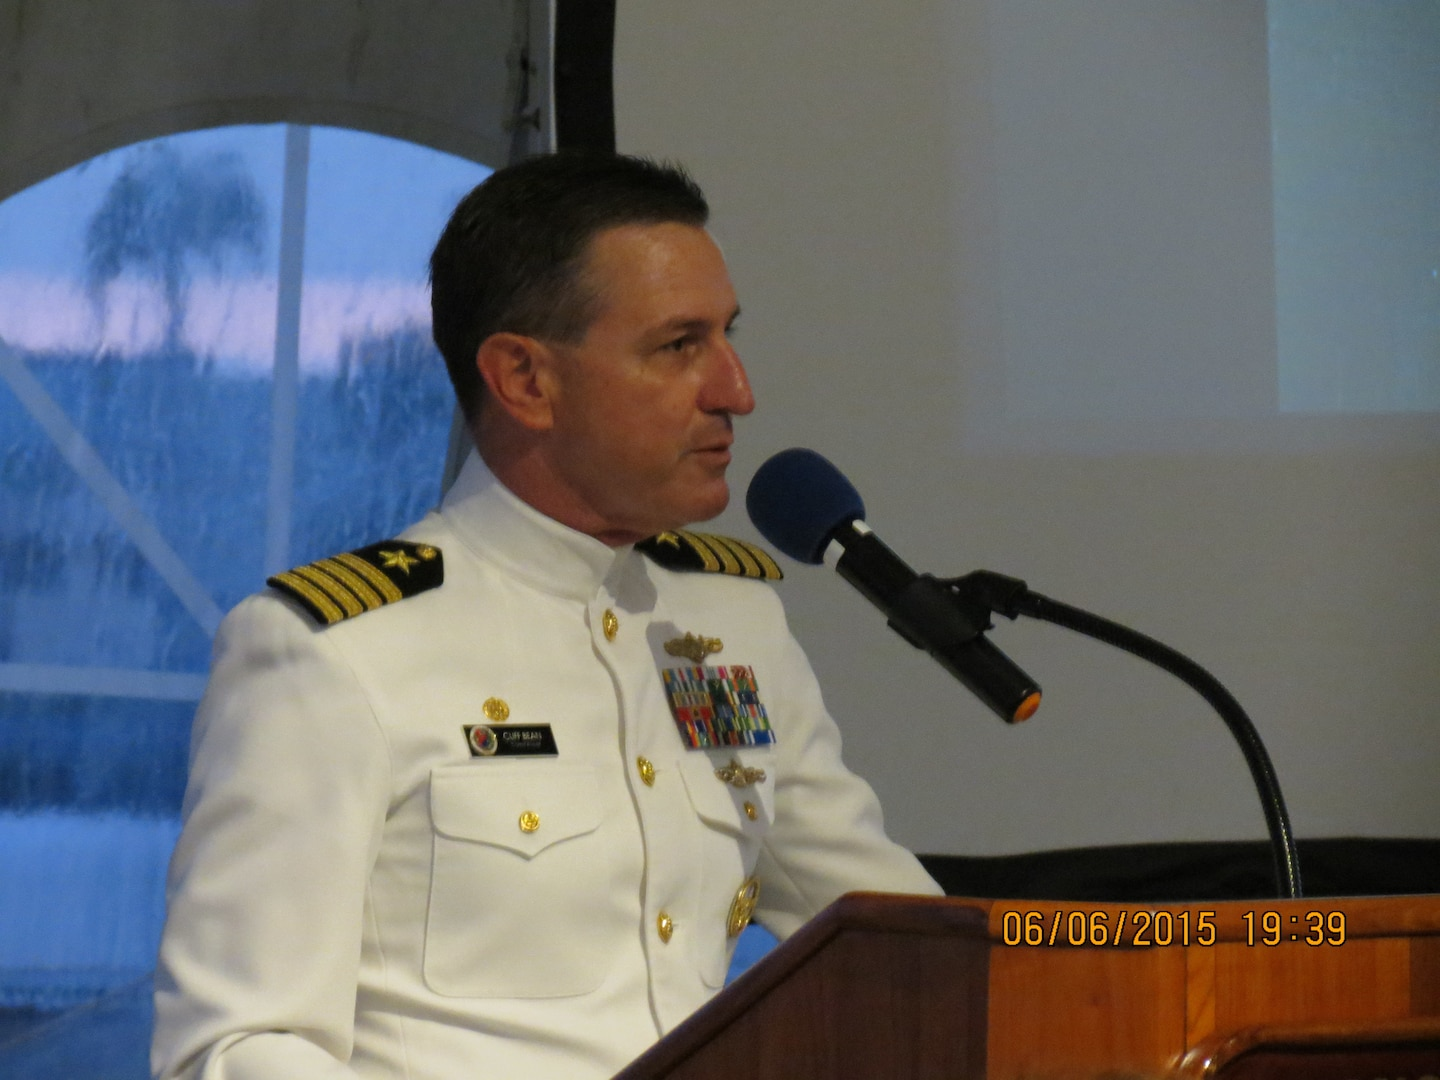 Capt Cliff Bean, Command of NSA Hawaii, greets guests and introduces the keynote speaker for the evening